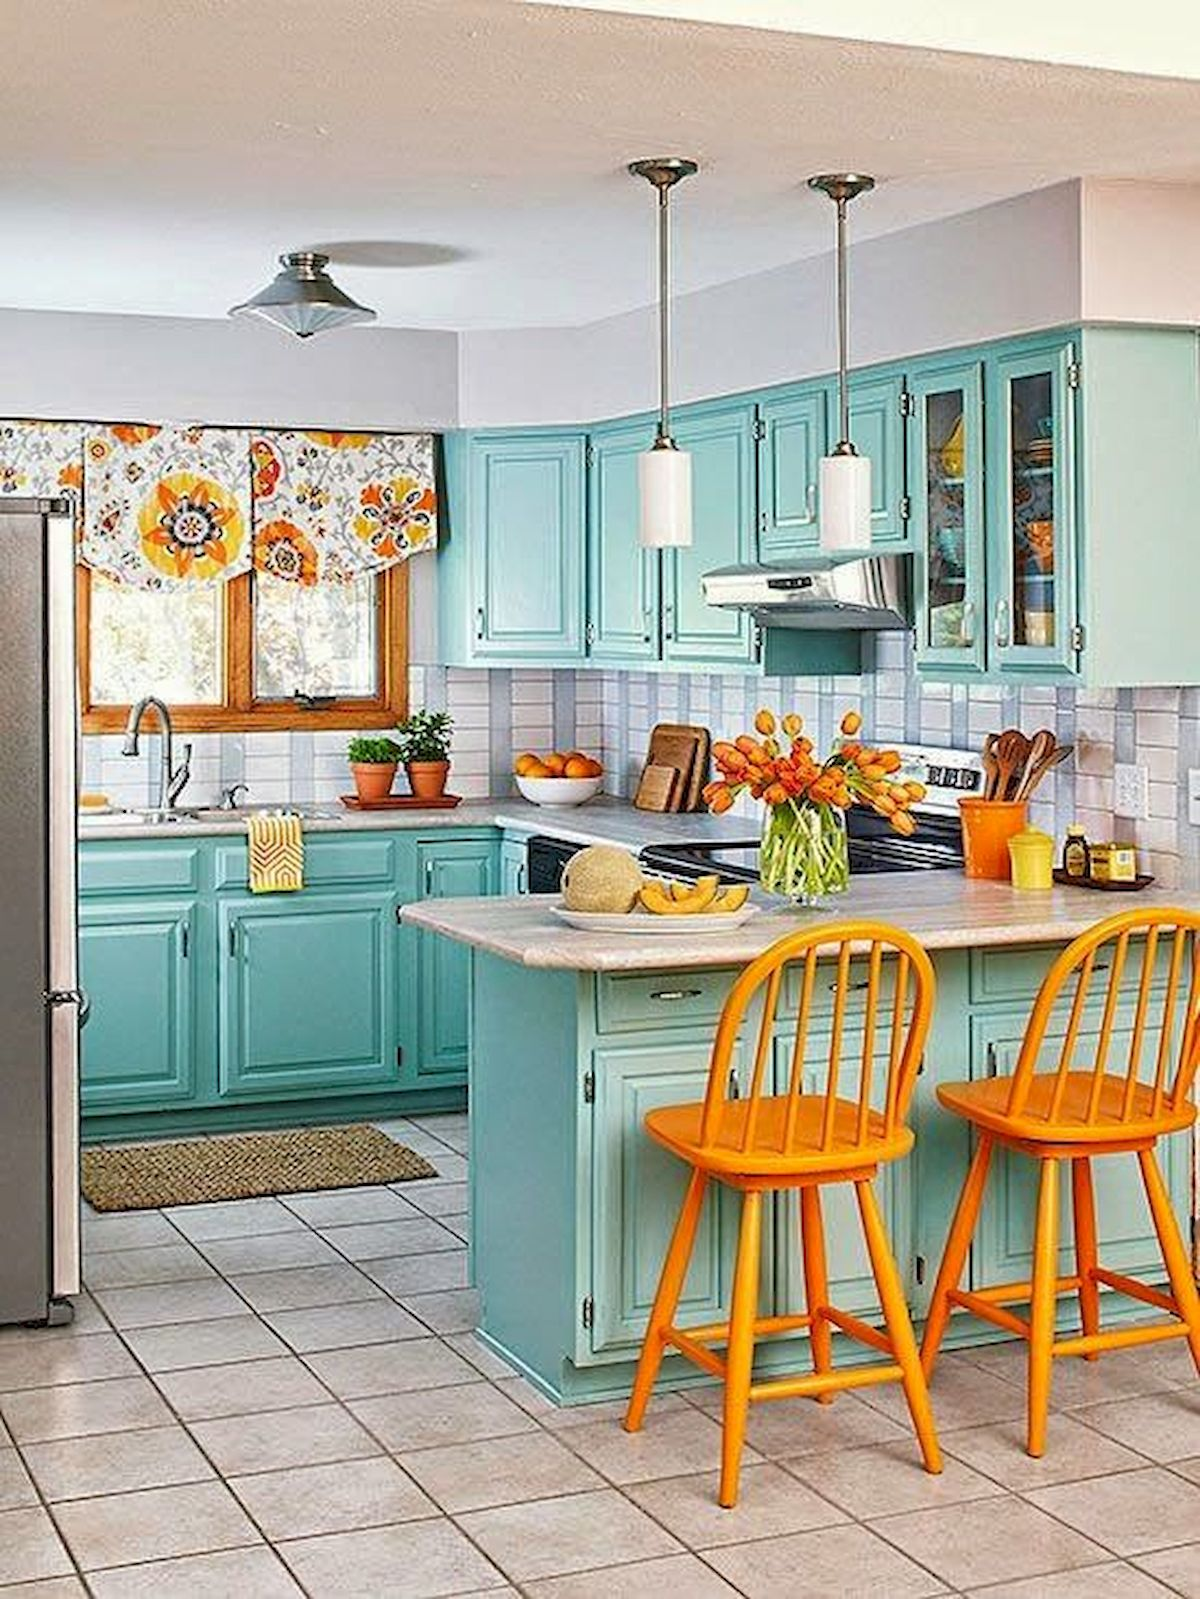 decor and design 38 best farmhouse kitchen decor and design ideas for 2018 Published December 30, 2018 at 1200 × 1599 in 44 Best Farmhouse Kitchen  Cabinets Design Ideas And Decor